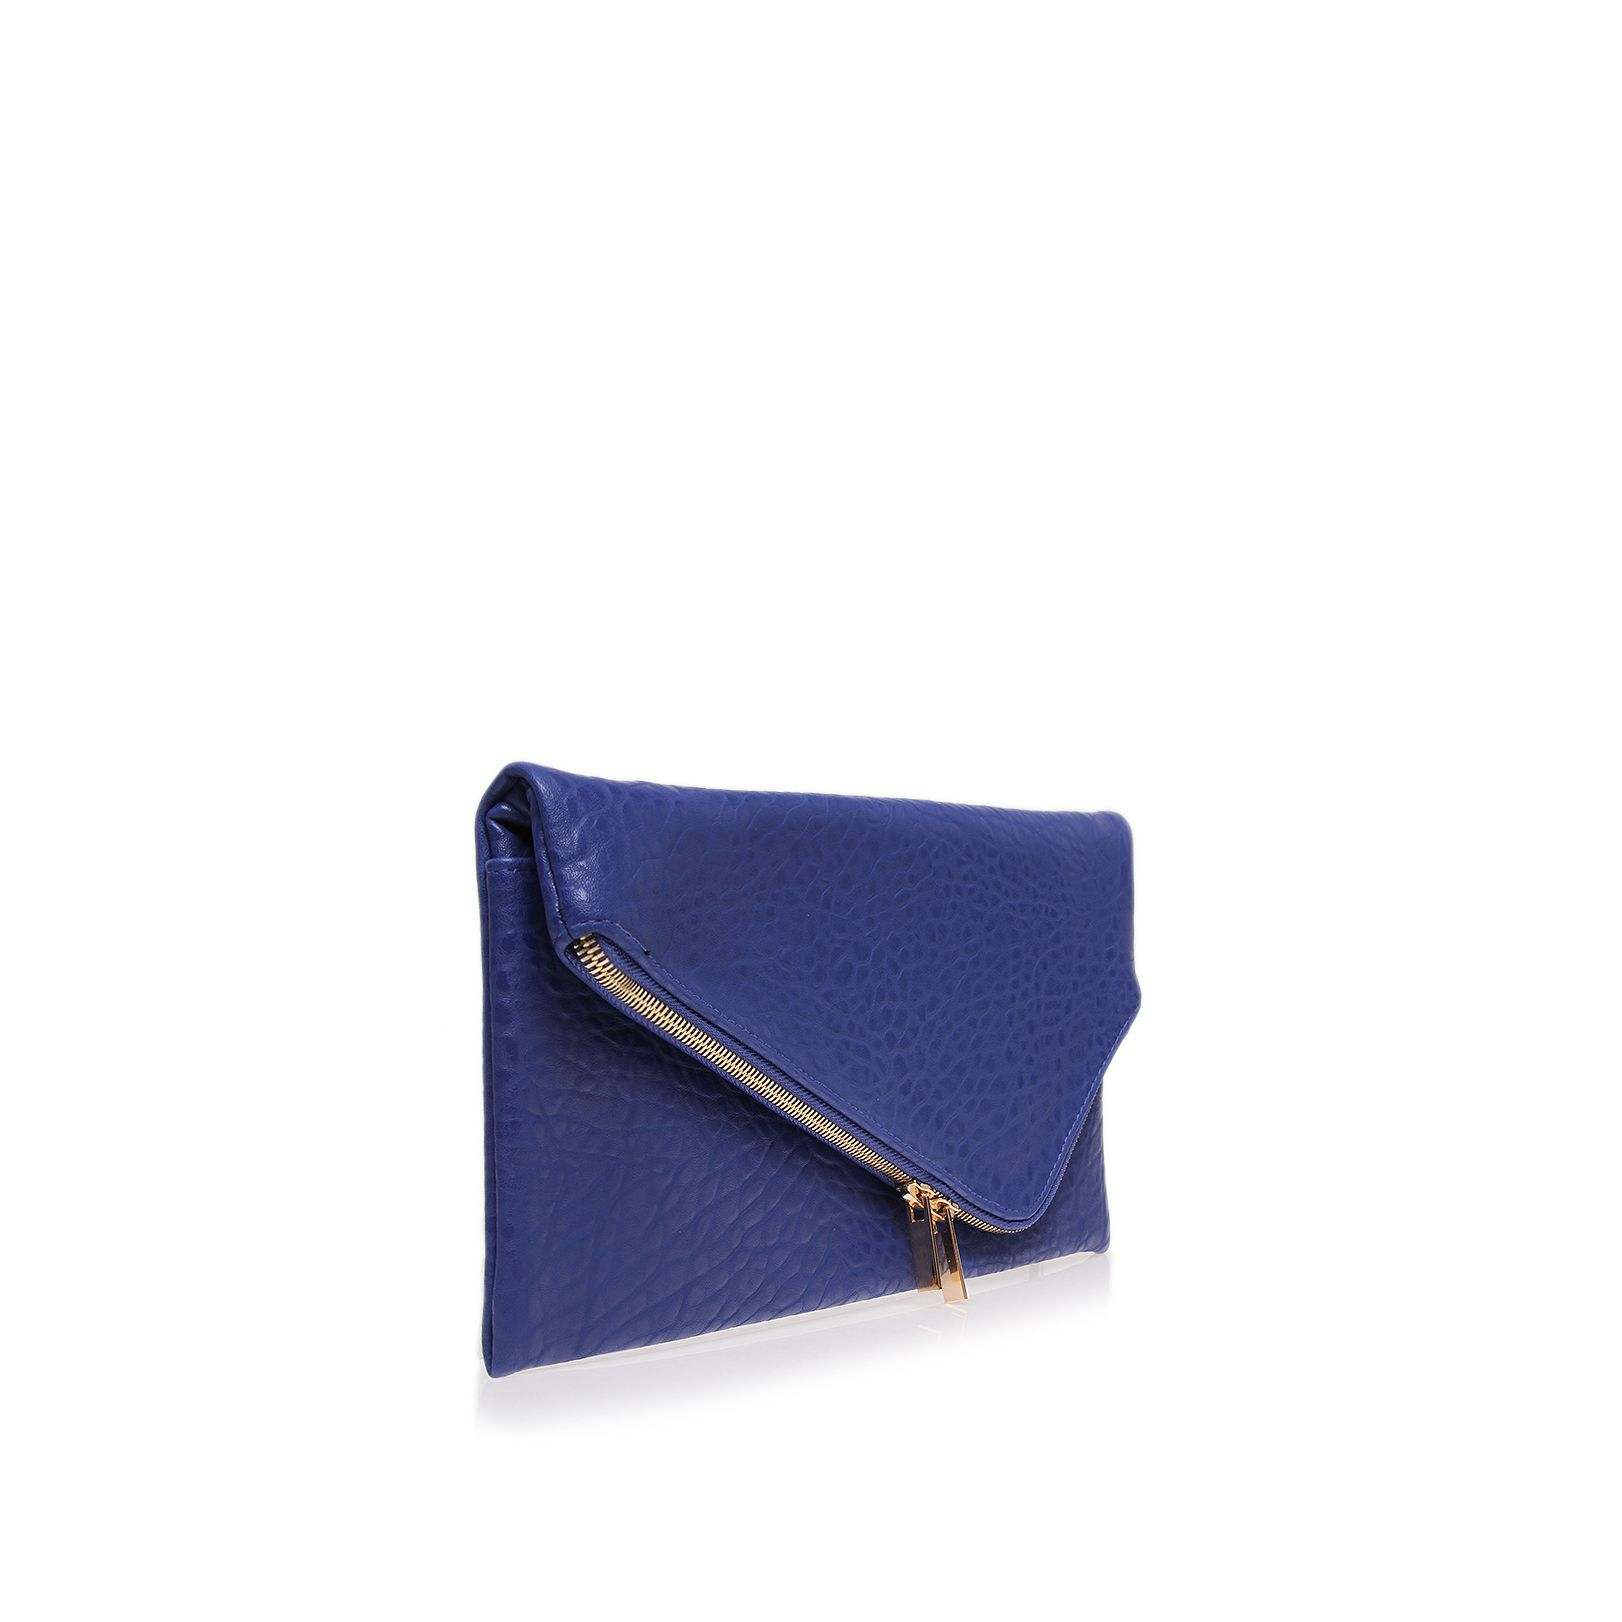 Tiger blue clutch bag